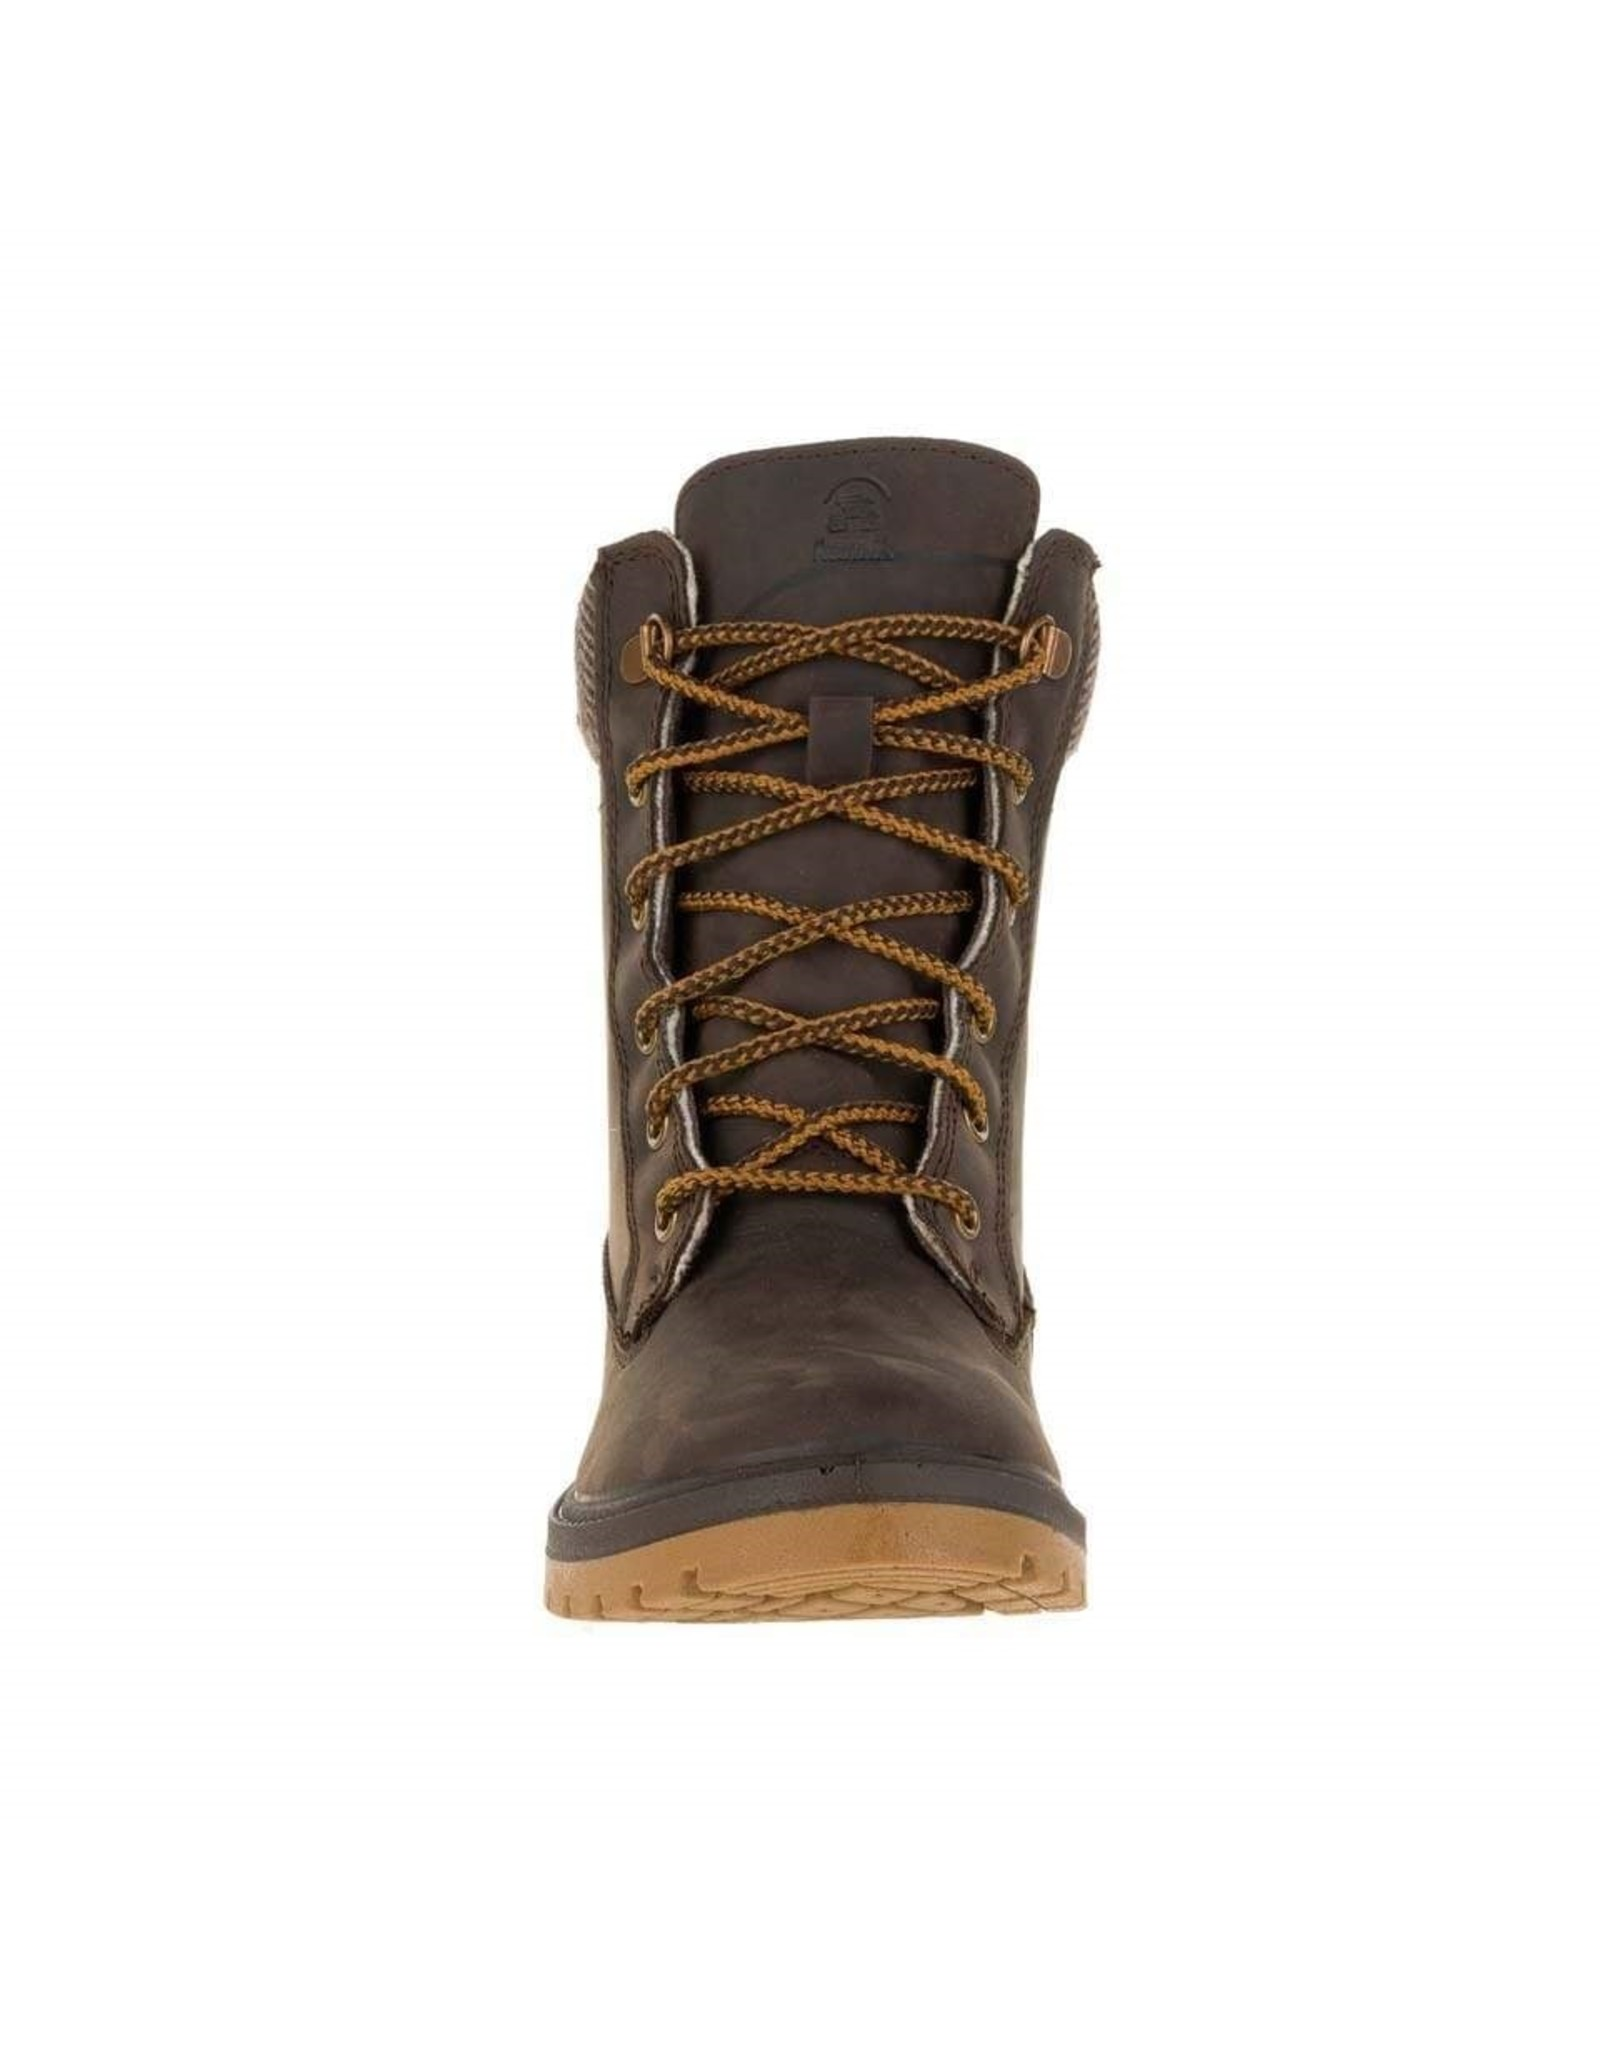 KAMIK ROGUE BOOTS LADIES -30 BROWN LEATHER